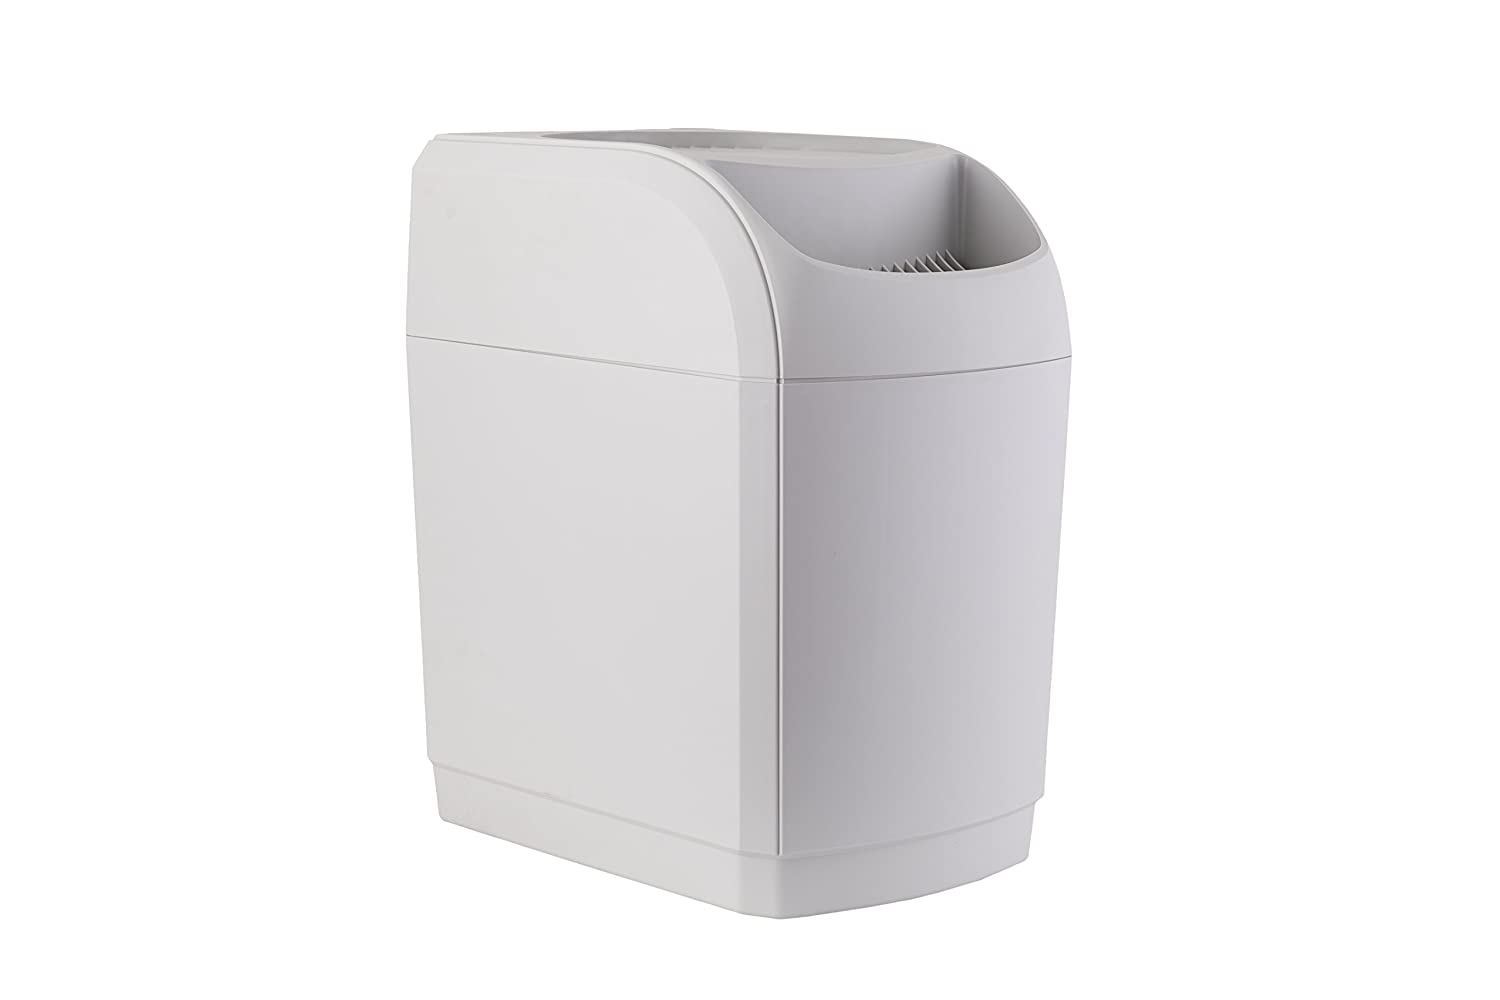 AIRCARE Space-Save Evaporative Humidifier (2700 sq. ft)